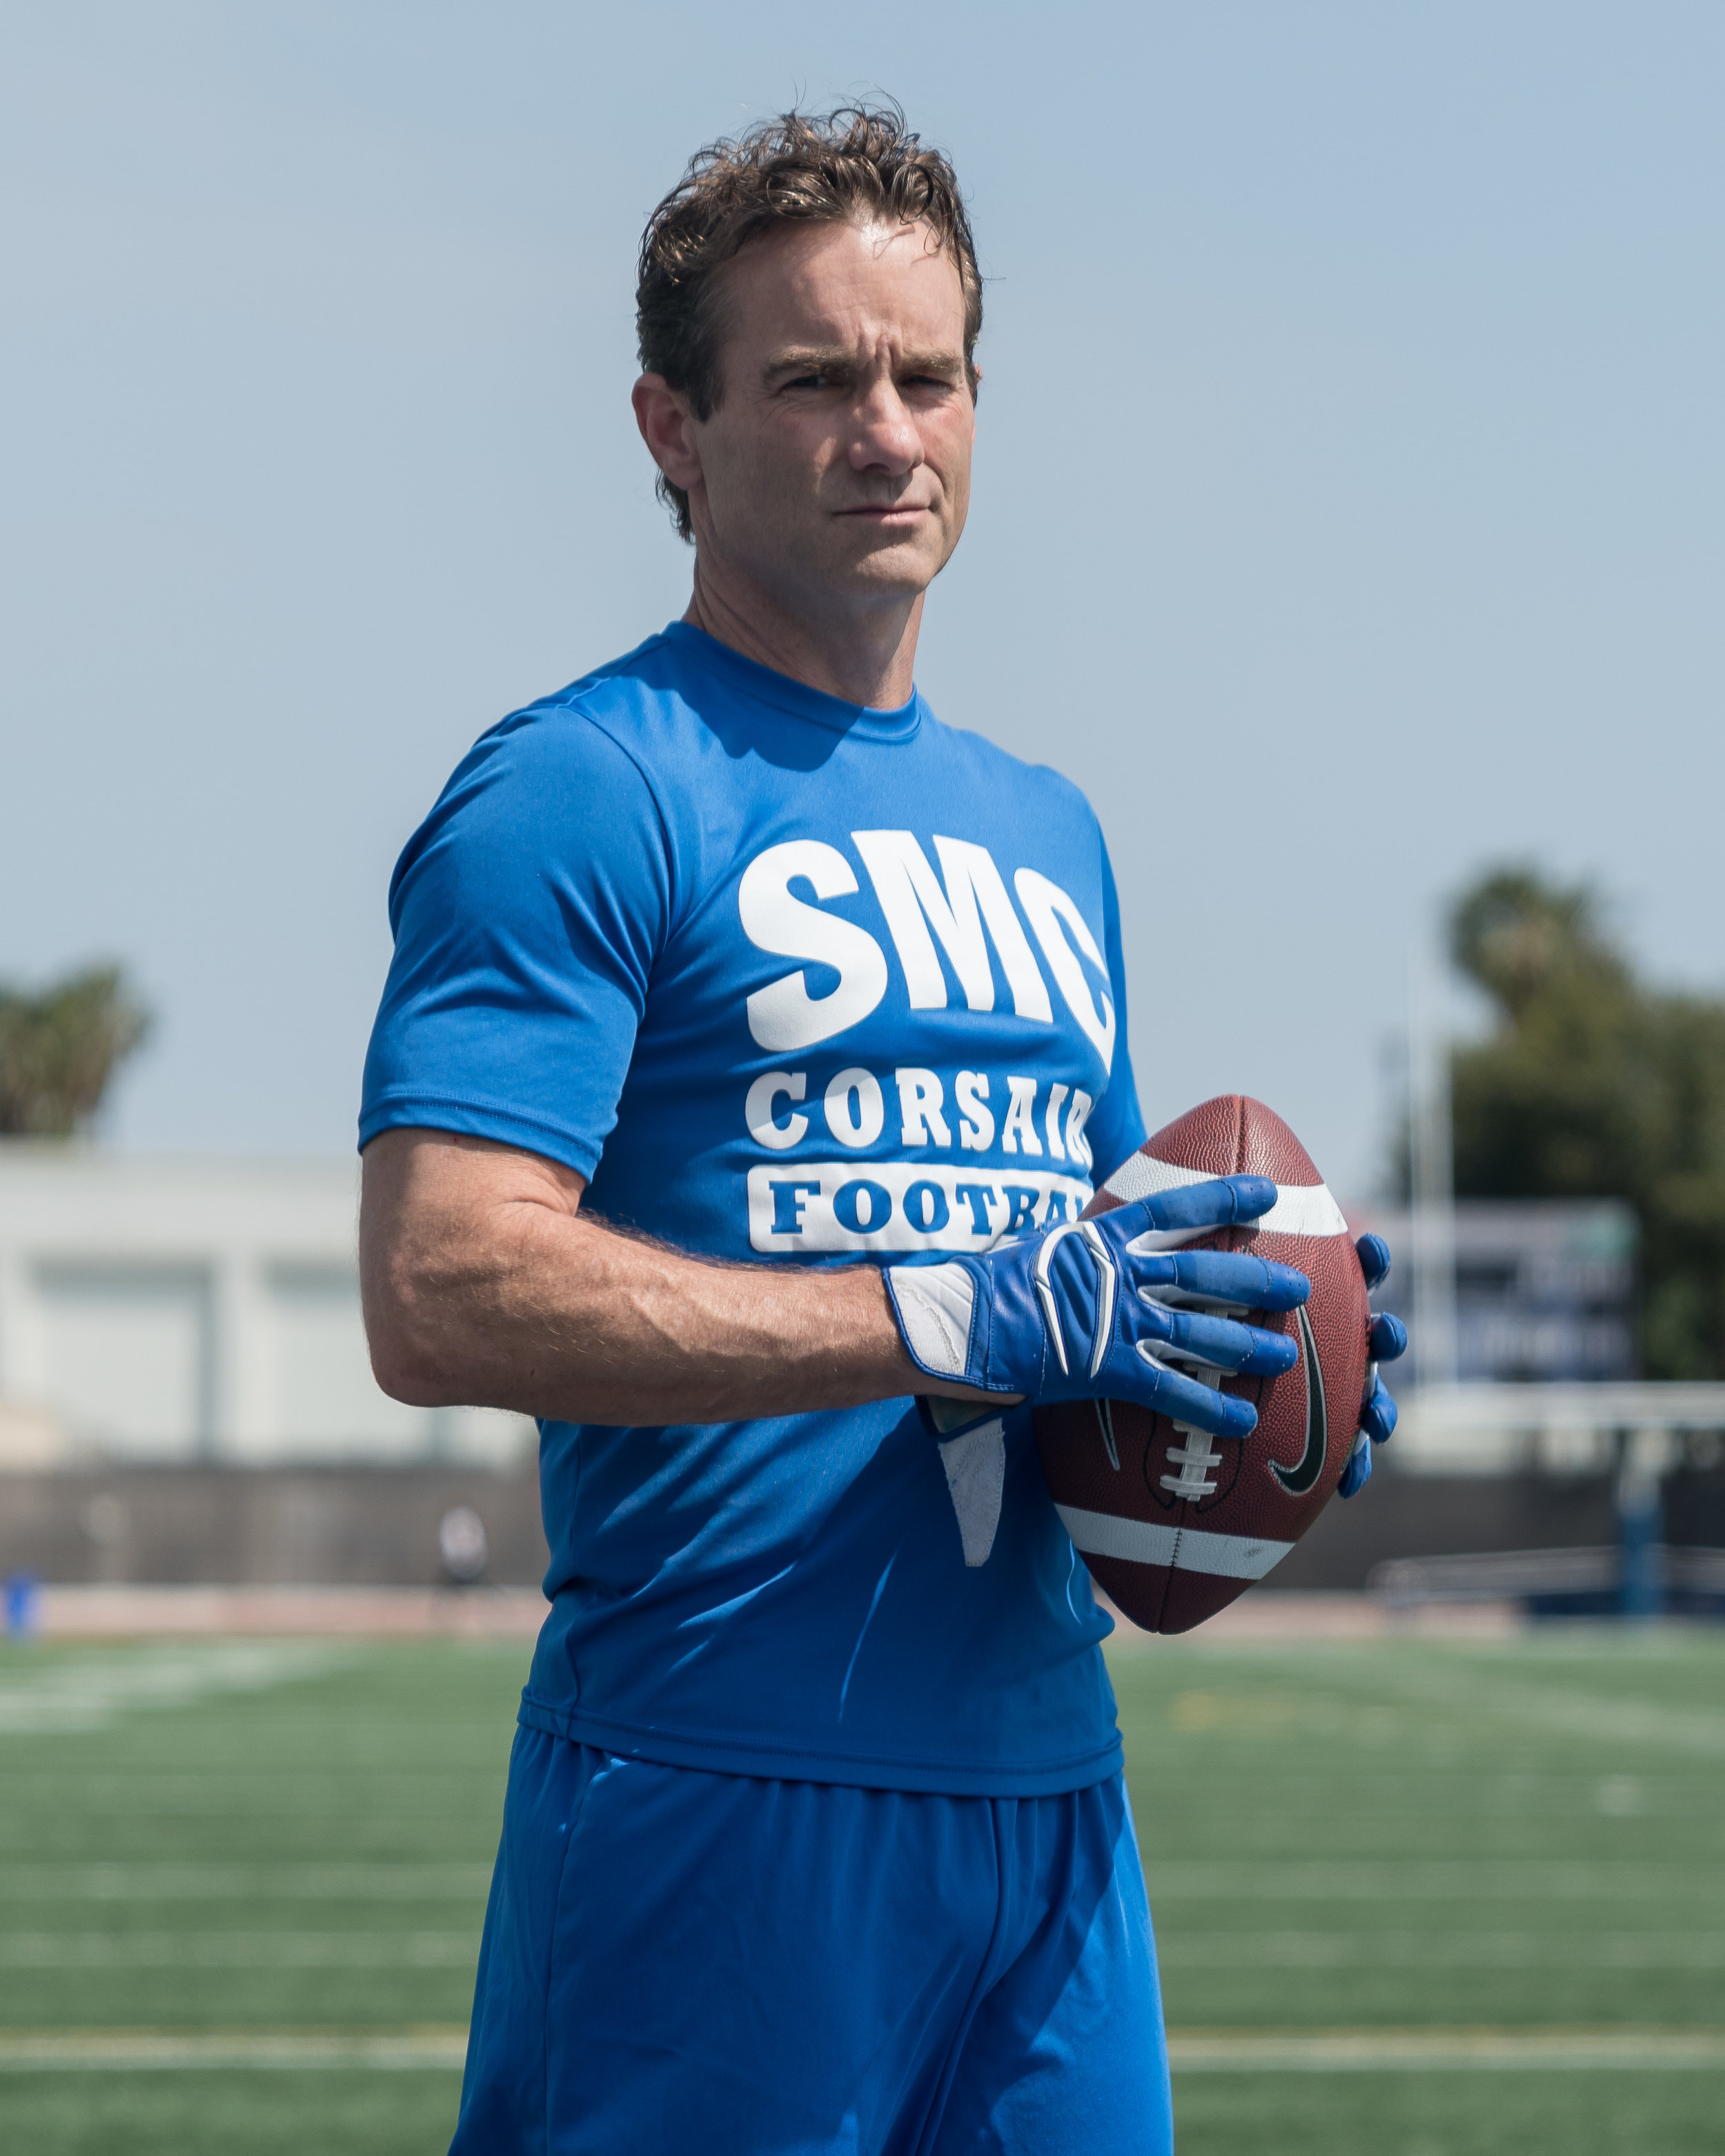 Santa Monica College student, RC Everbeck, a 48-year-old player on SMC's football team, poses for a portrait at the Corsair Stadium at Santa Monica College in Santa Monica, California on May 22, 2018. Everbeck played safety in his first season. (Helena Sung/Corsair Photo).